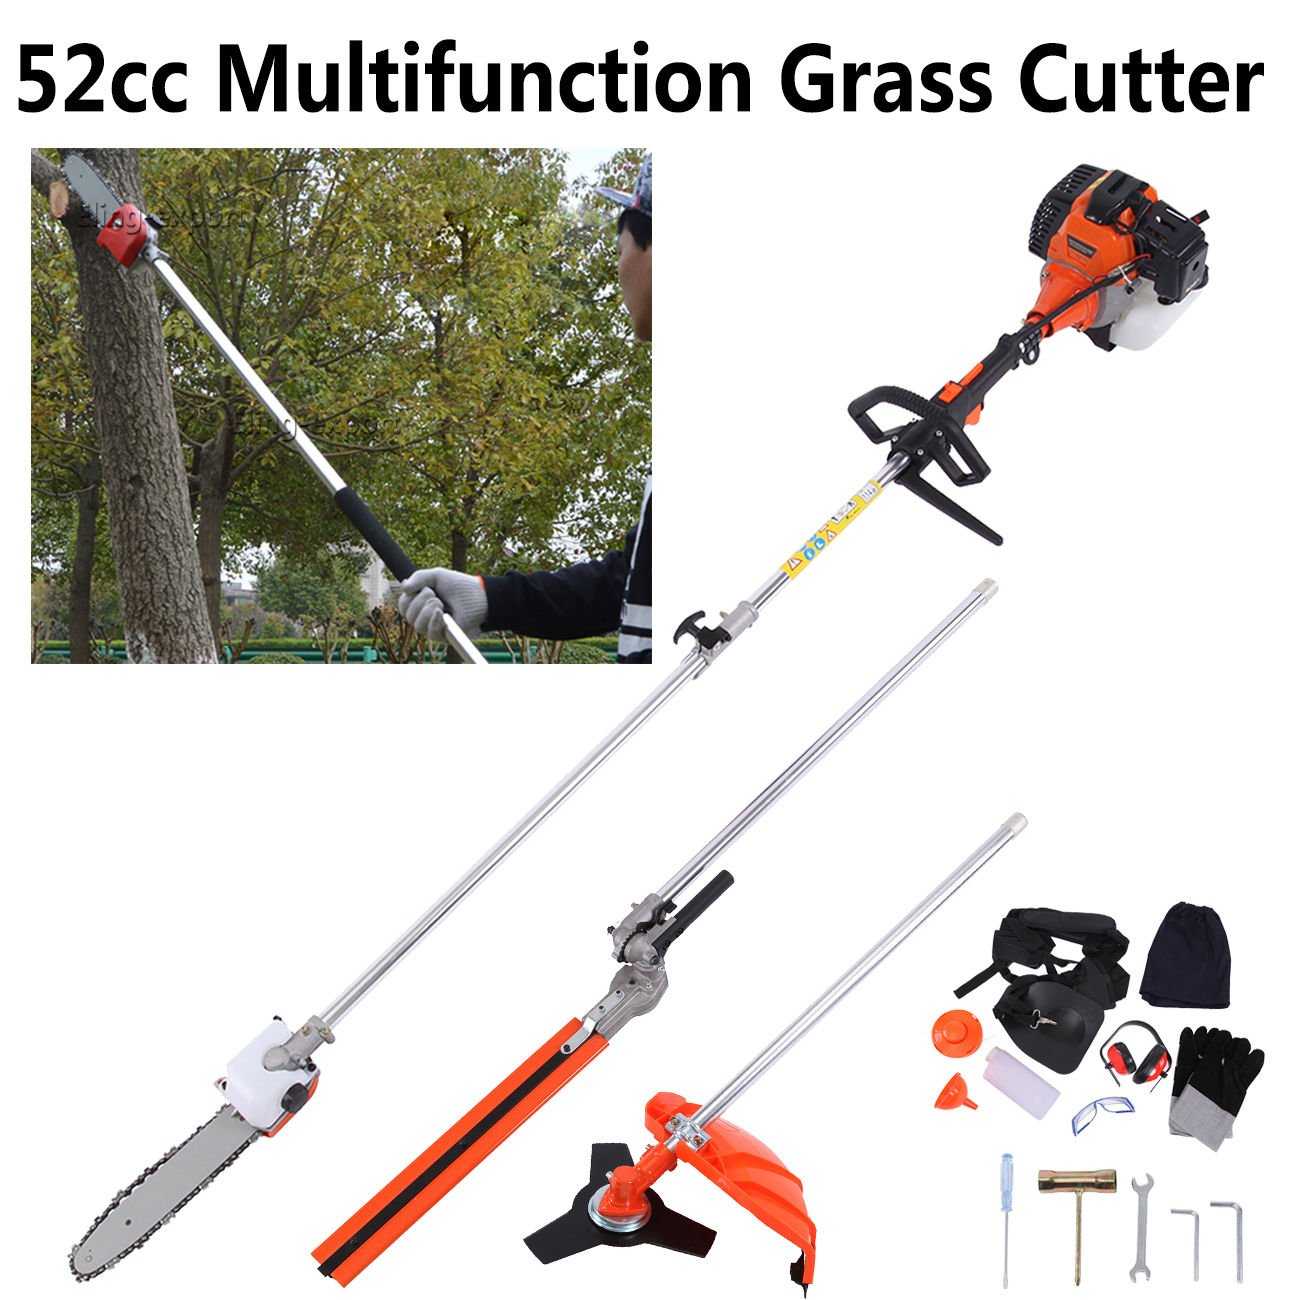 Ridgeyard 52CC Gas Multi-functional 5 in 1 Pole Hedge Trimmer, Trimmer, Brush Cutter, Pole Chainsaw Pruner & 43 inch Extension Pole